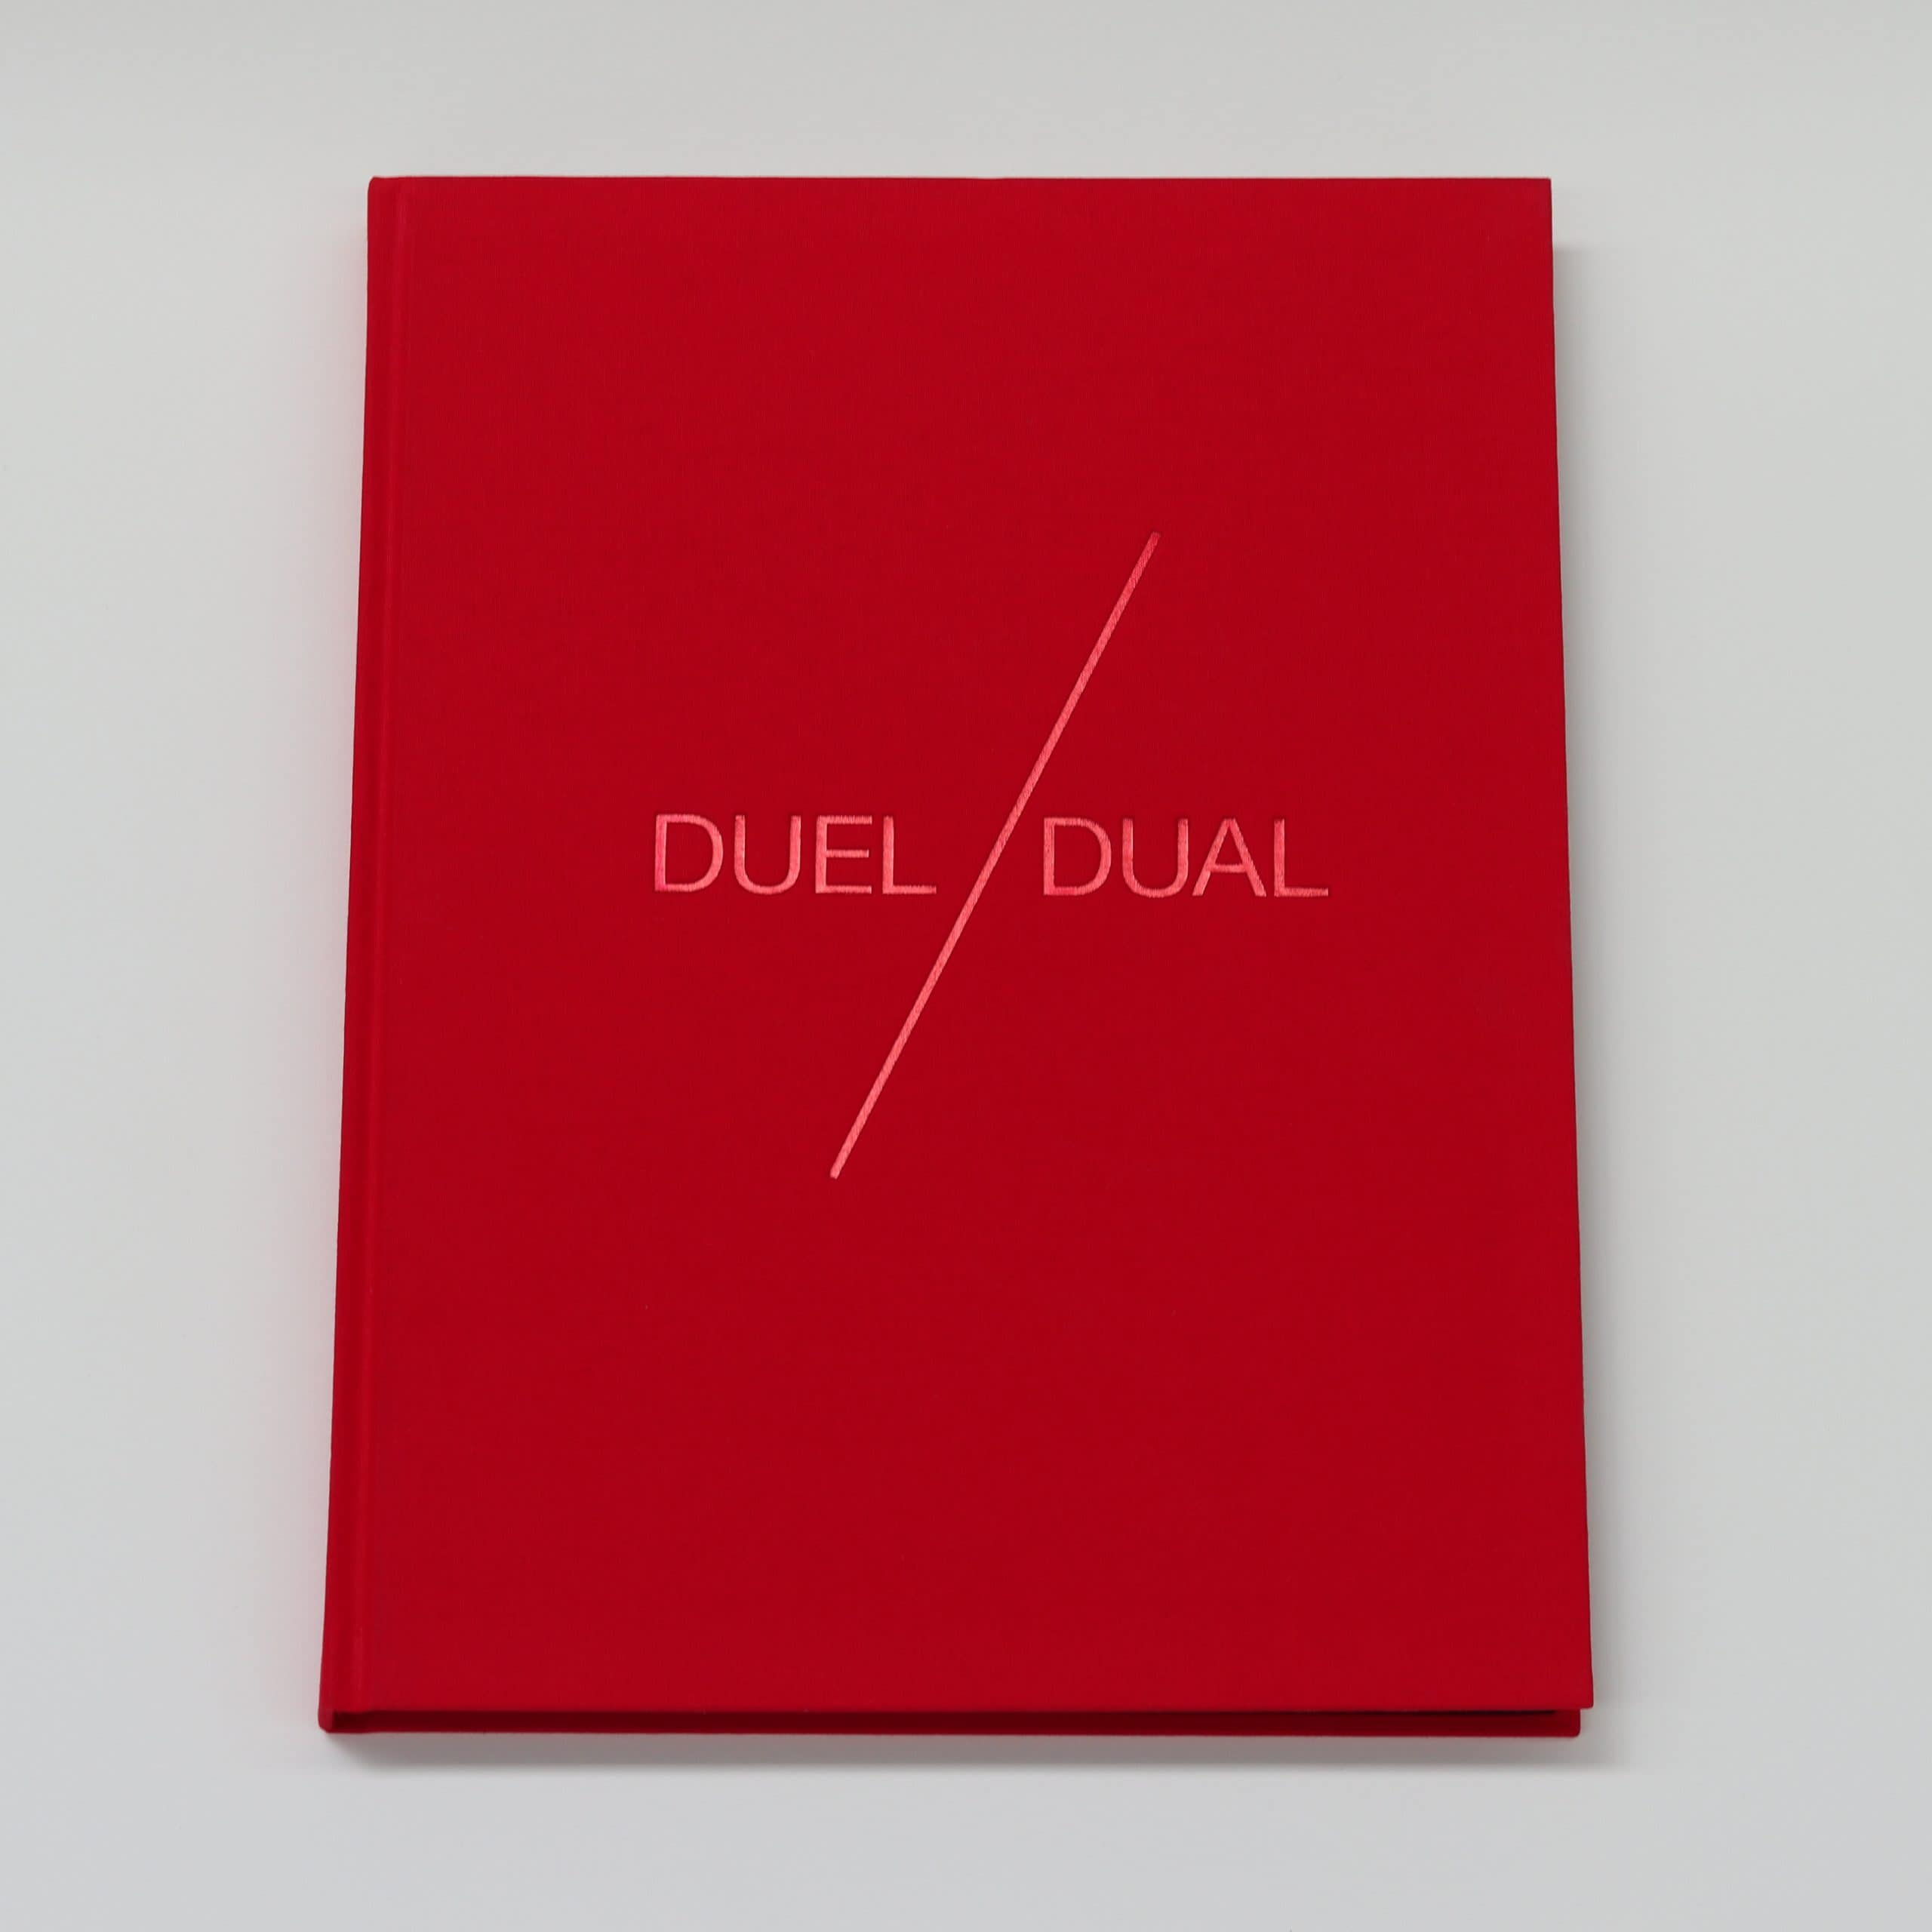 Brook Andrew & Trent Walter, Dual/Duel, hardcover 176 pages, edition of 550 with 500 copies in red and yellow cloth, and a further 50 copies in black cloth with unique additions by the artist, designed by Yanni Florence.